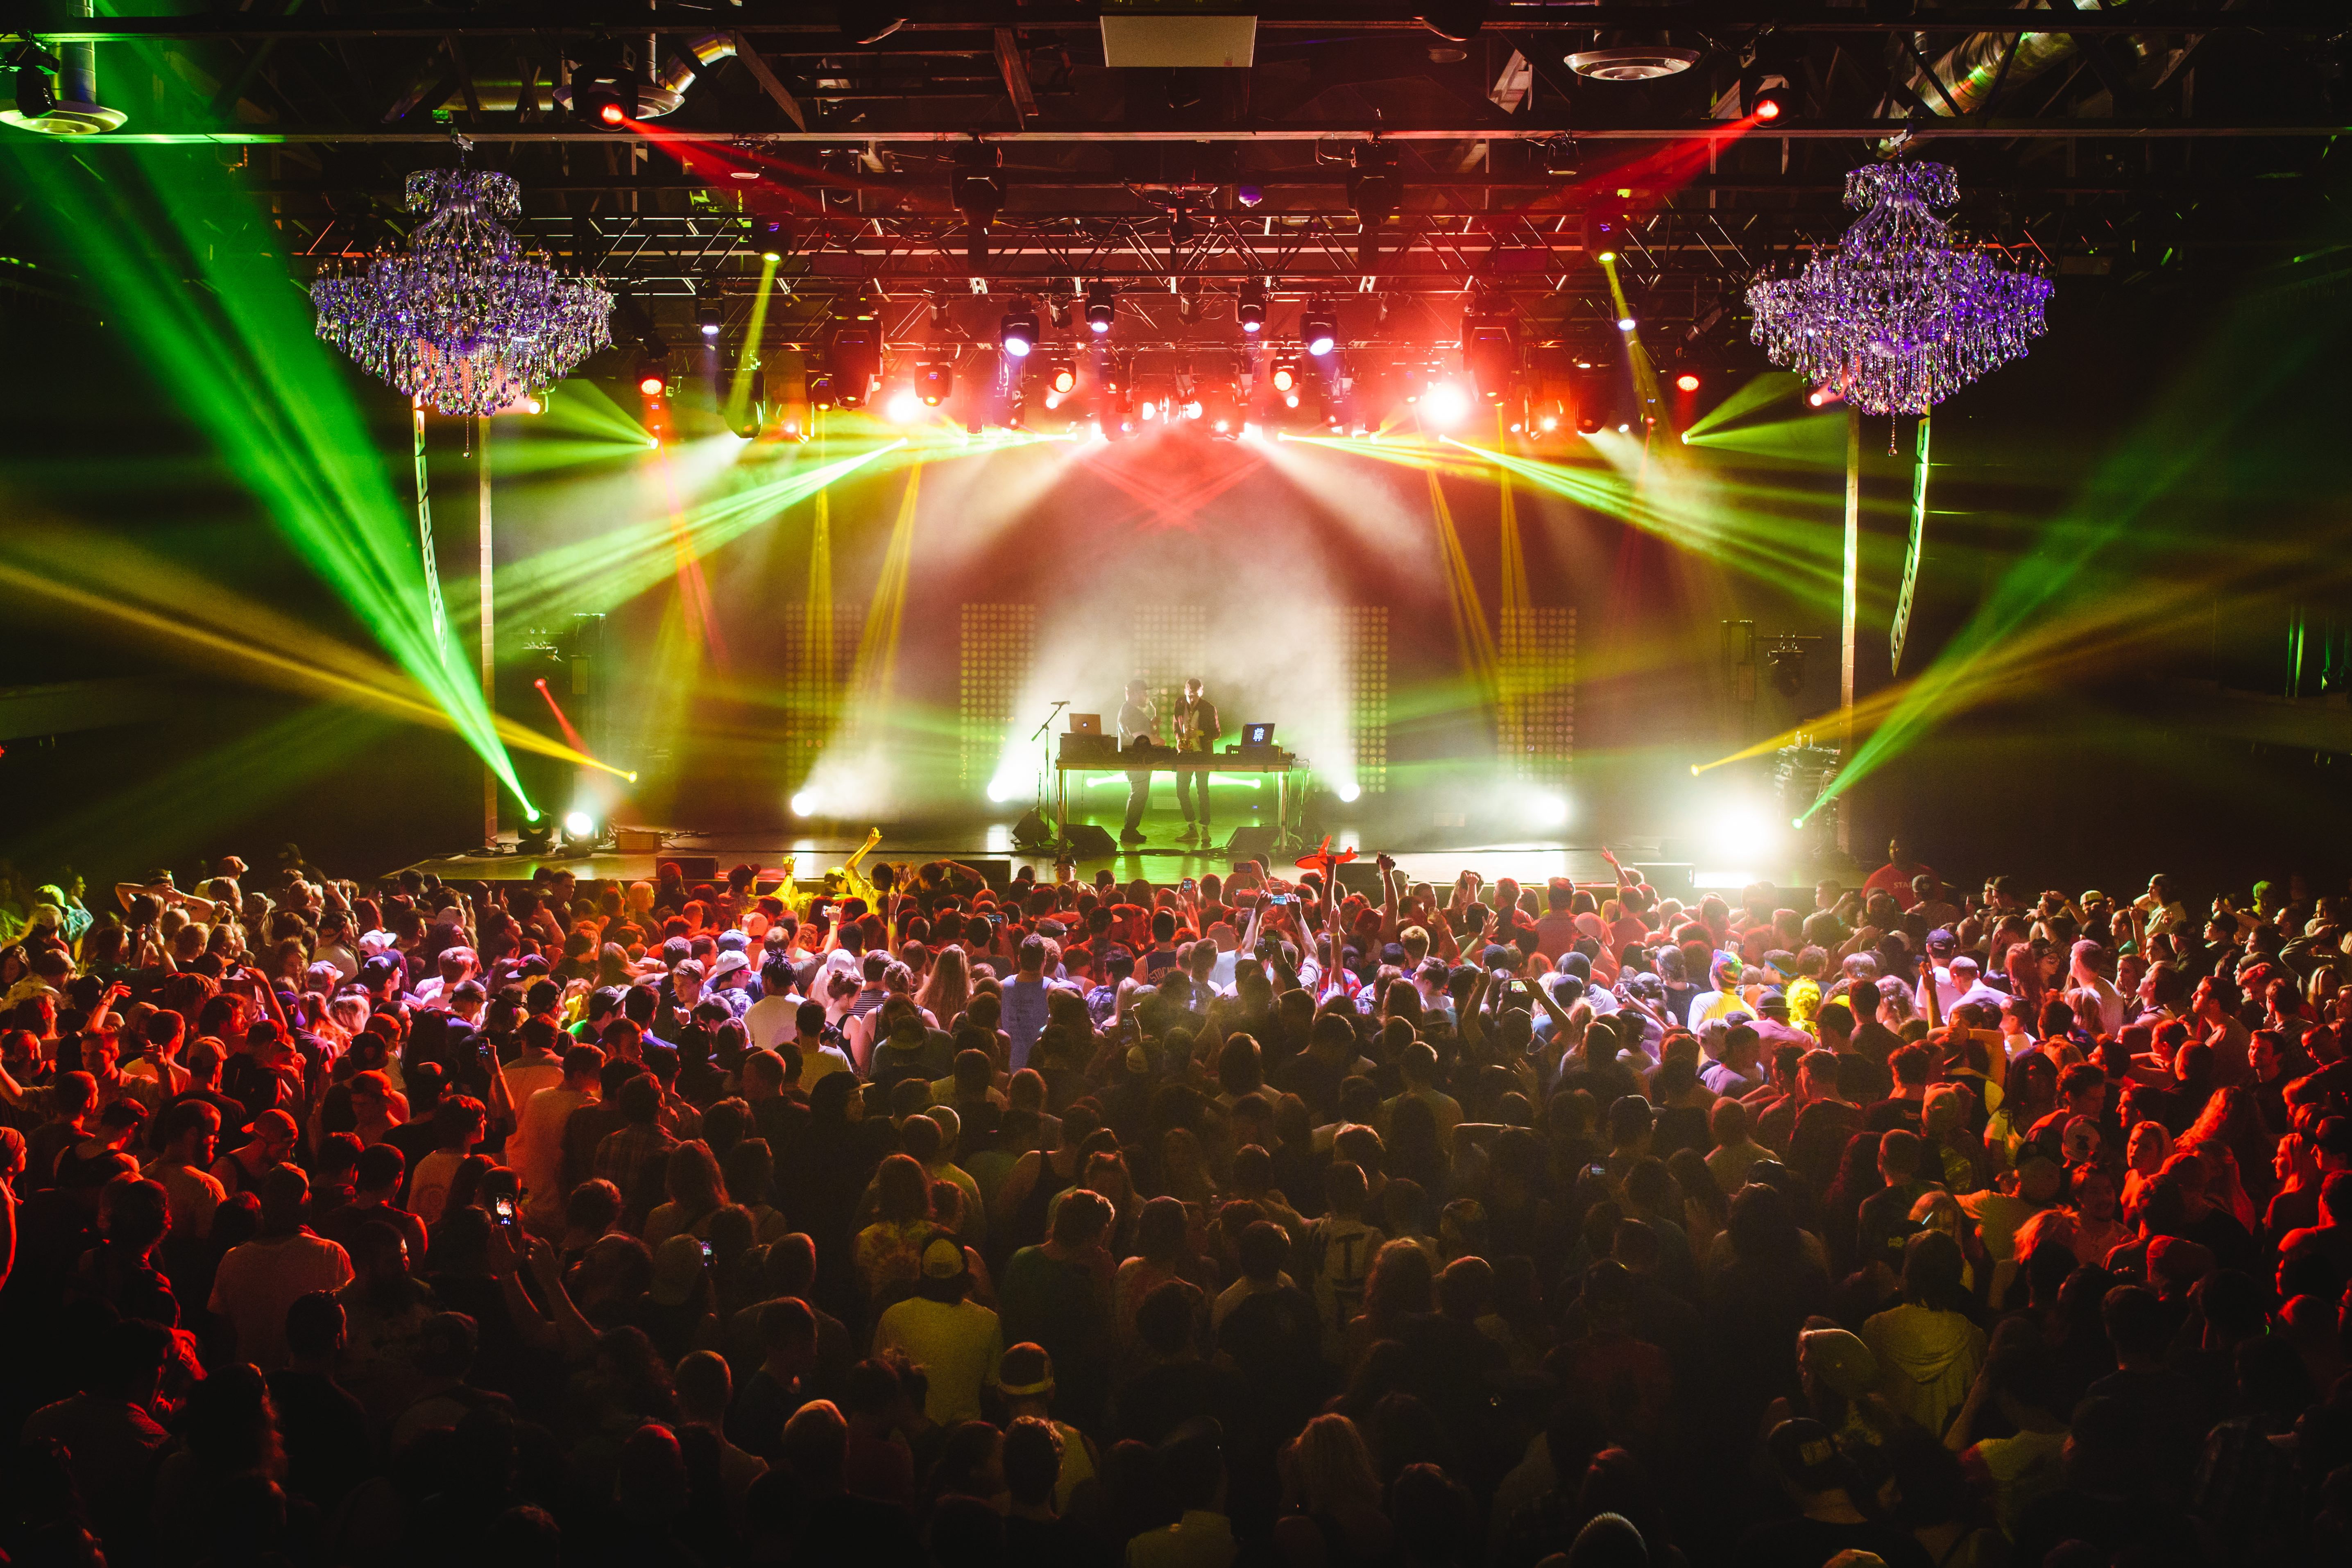 The Best Concert Venues to See Live Music Around Philadelphia